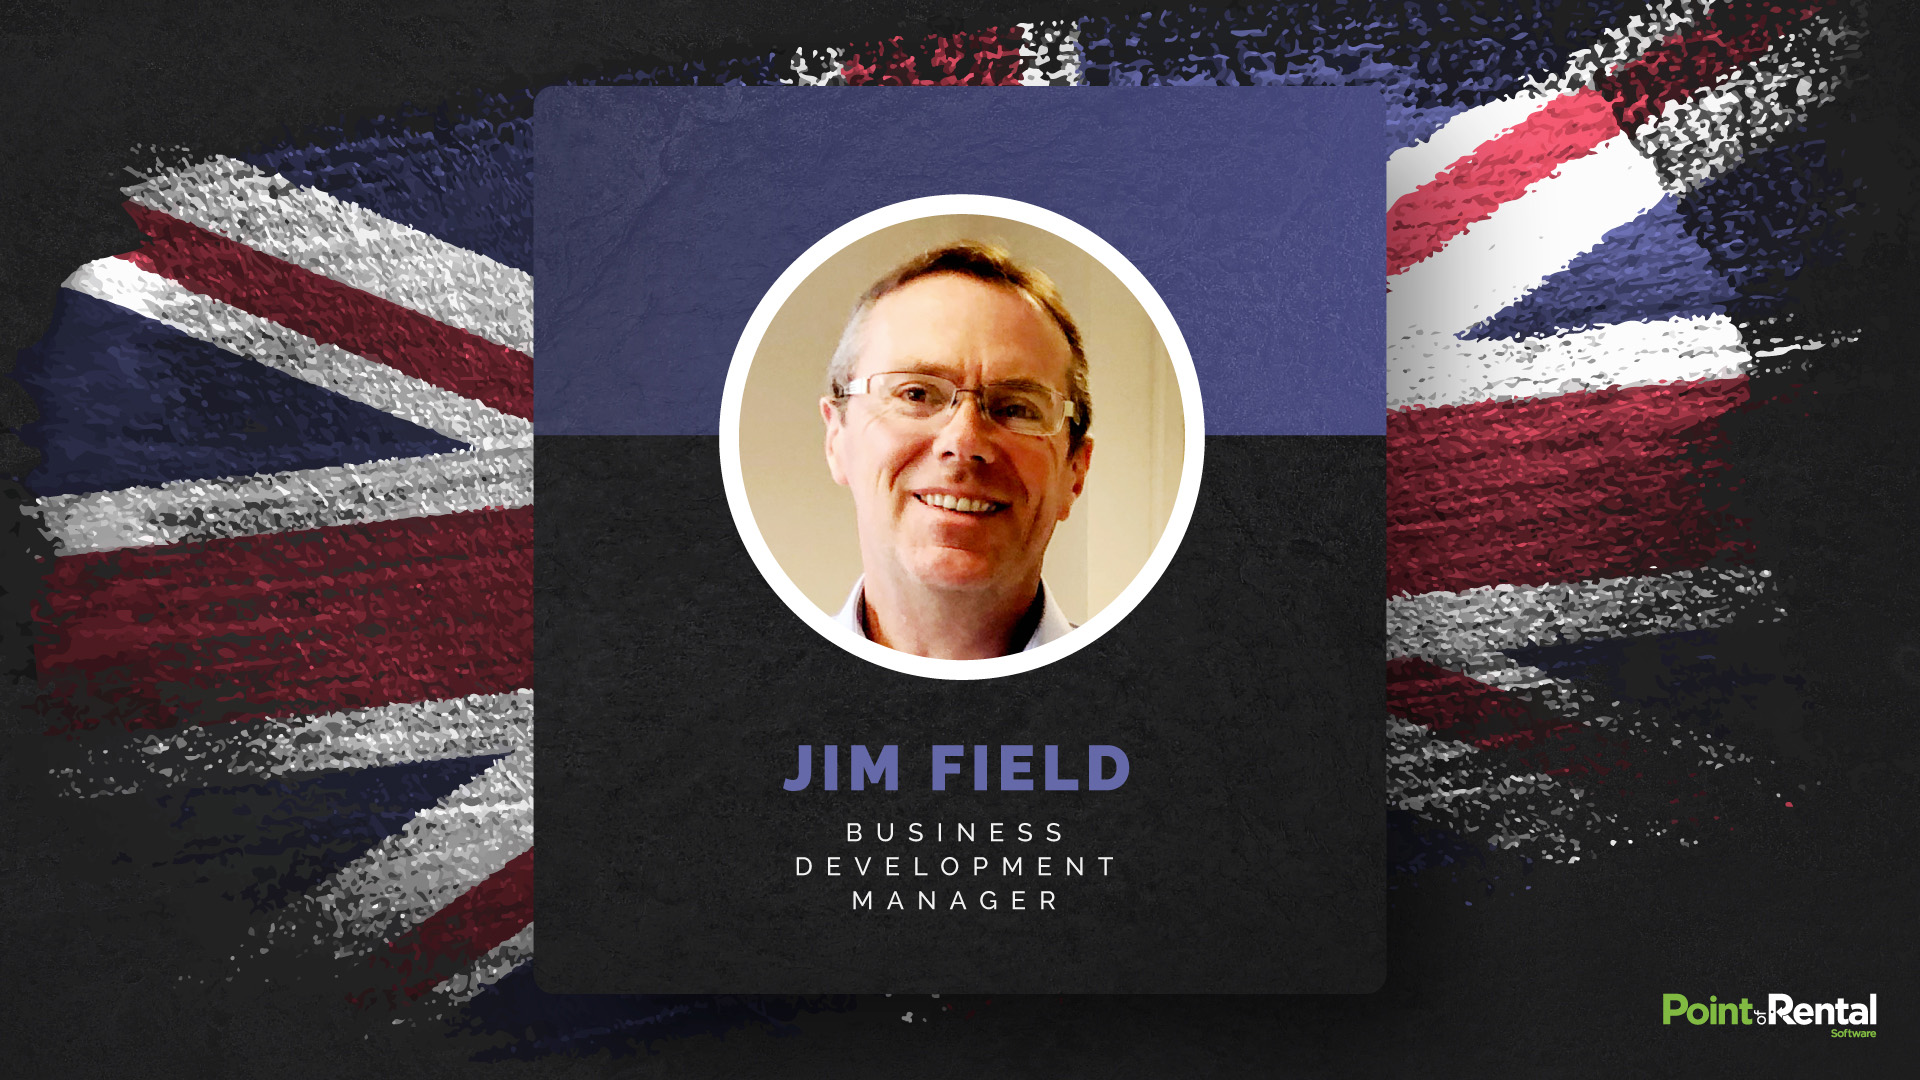 Jim Field, Business Development Manager graphic